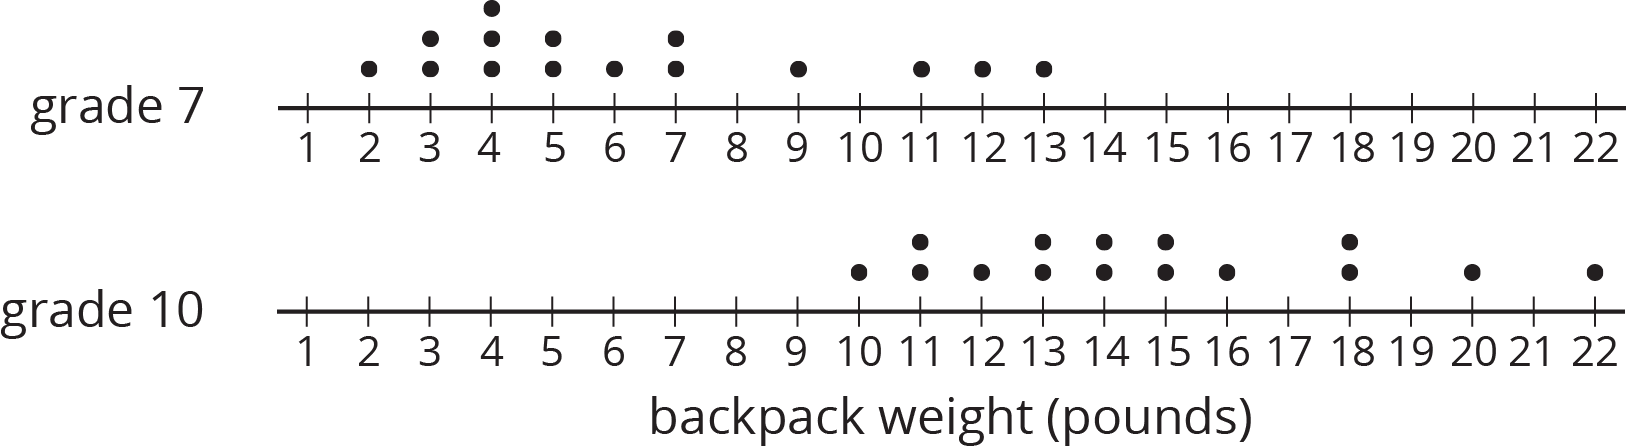 """Two dot plots for """"backpack weight in pounds"""" are labeled """"grade 7"""" and """"grade 10,"""" and the numbers 1 through 22 are indicated. The data are as follows:  Grade 7: 2 pounds, 1 dot. 3 pounds, 2 dots. 4 pounds, 3 dots. 5 pounds, 2 dots. 6 pounds, 1 dot. 7 pounds, 2 dots. 9 pounds, 1 dot. 11 pounds, 1 dot. 12 pounds, 1 dot. 13 pounds, 1 dot.  Grade 10: 10 pounds, 1 dot. 11 pounds, 2 dots. 12 pounds, 1 dot. 13 pounds, 2 dots. 14 pounds, 2 dots. 15 pounds, 2 dots. 16 pounds, 1 dot. 18 pounds, 2 dots. 20 pounds, 1 dot. 22 pounds, 1 dot."""